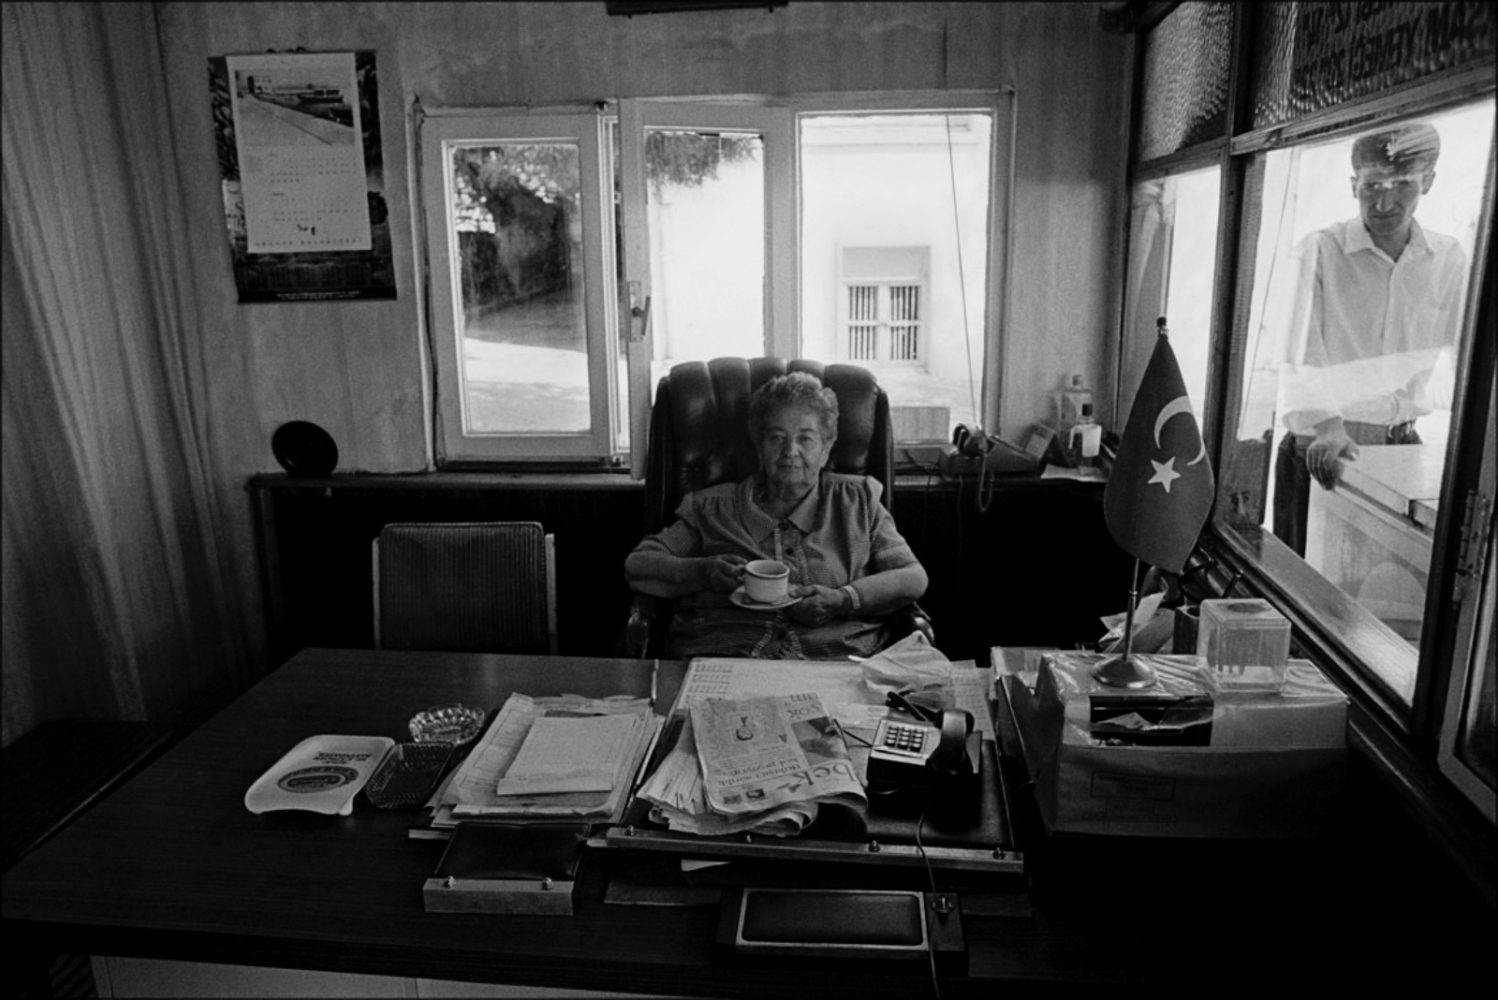 Woman at Her Desk, Turkey, Summer 1997